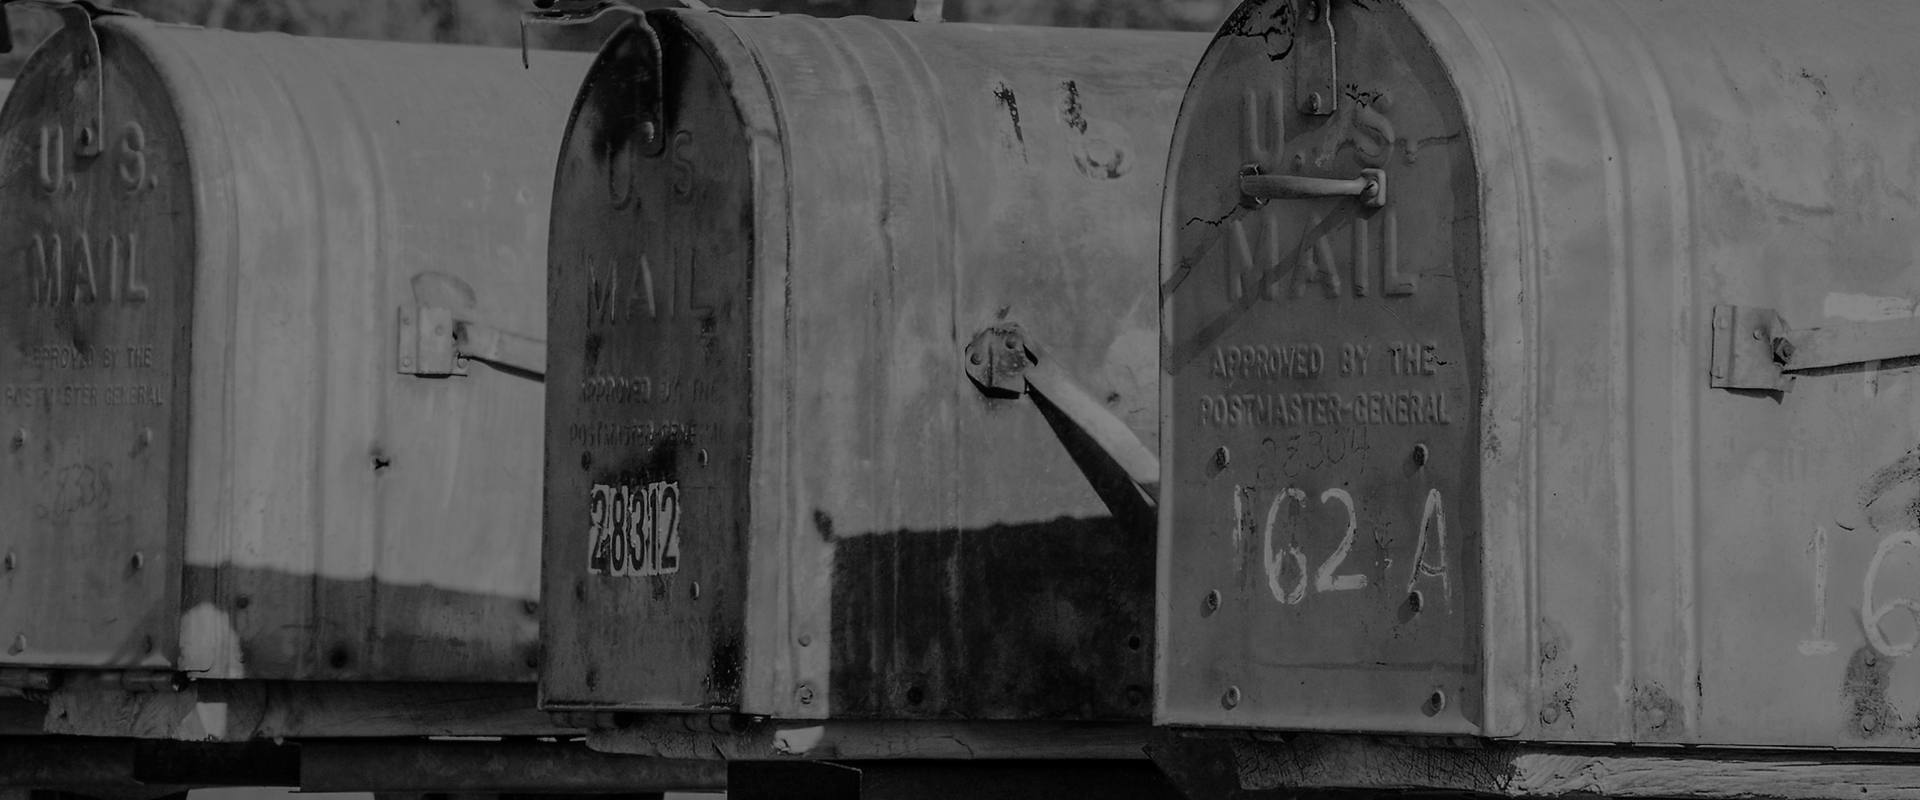 Mail Boxes - Contact US